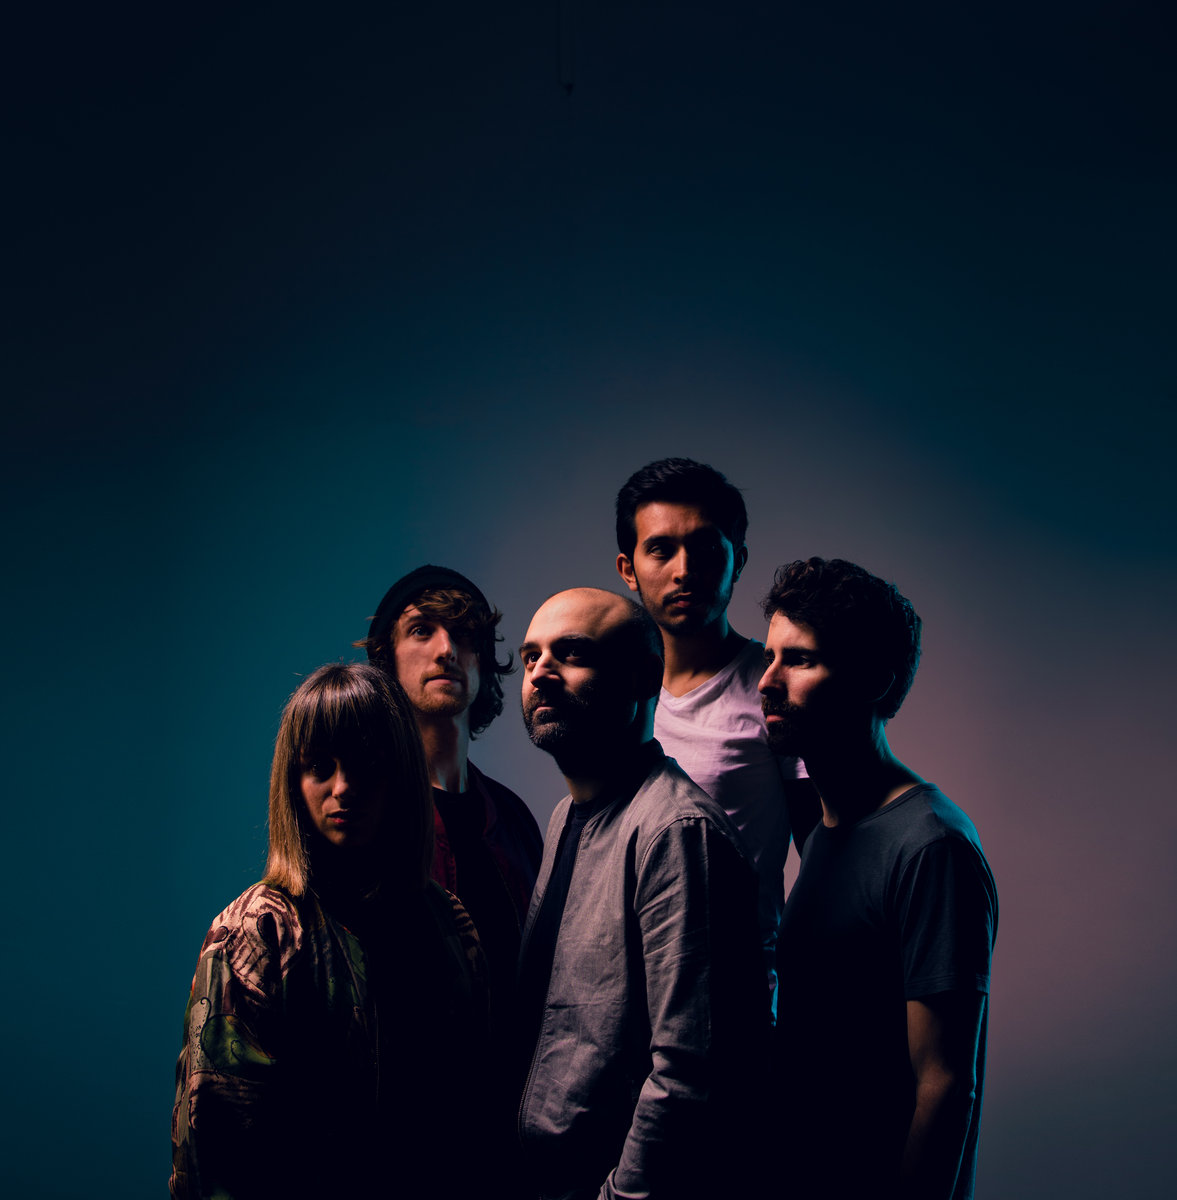 Brand new music from London band Kinkajous.